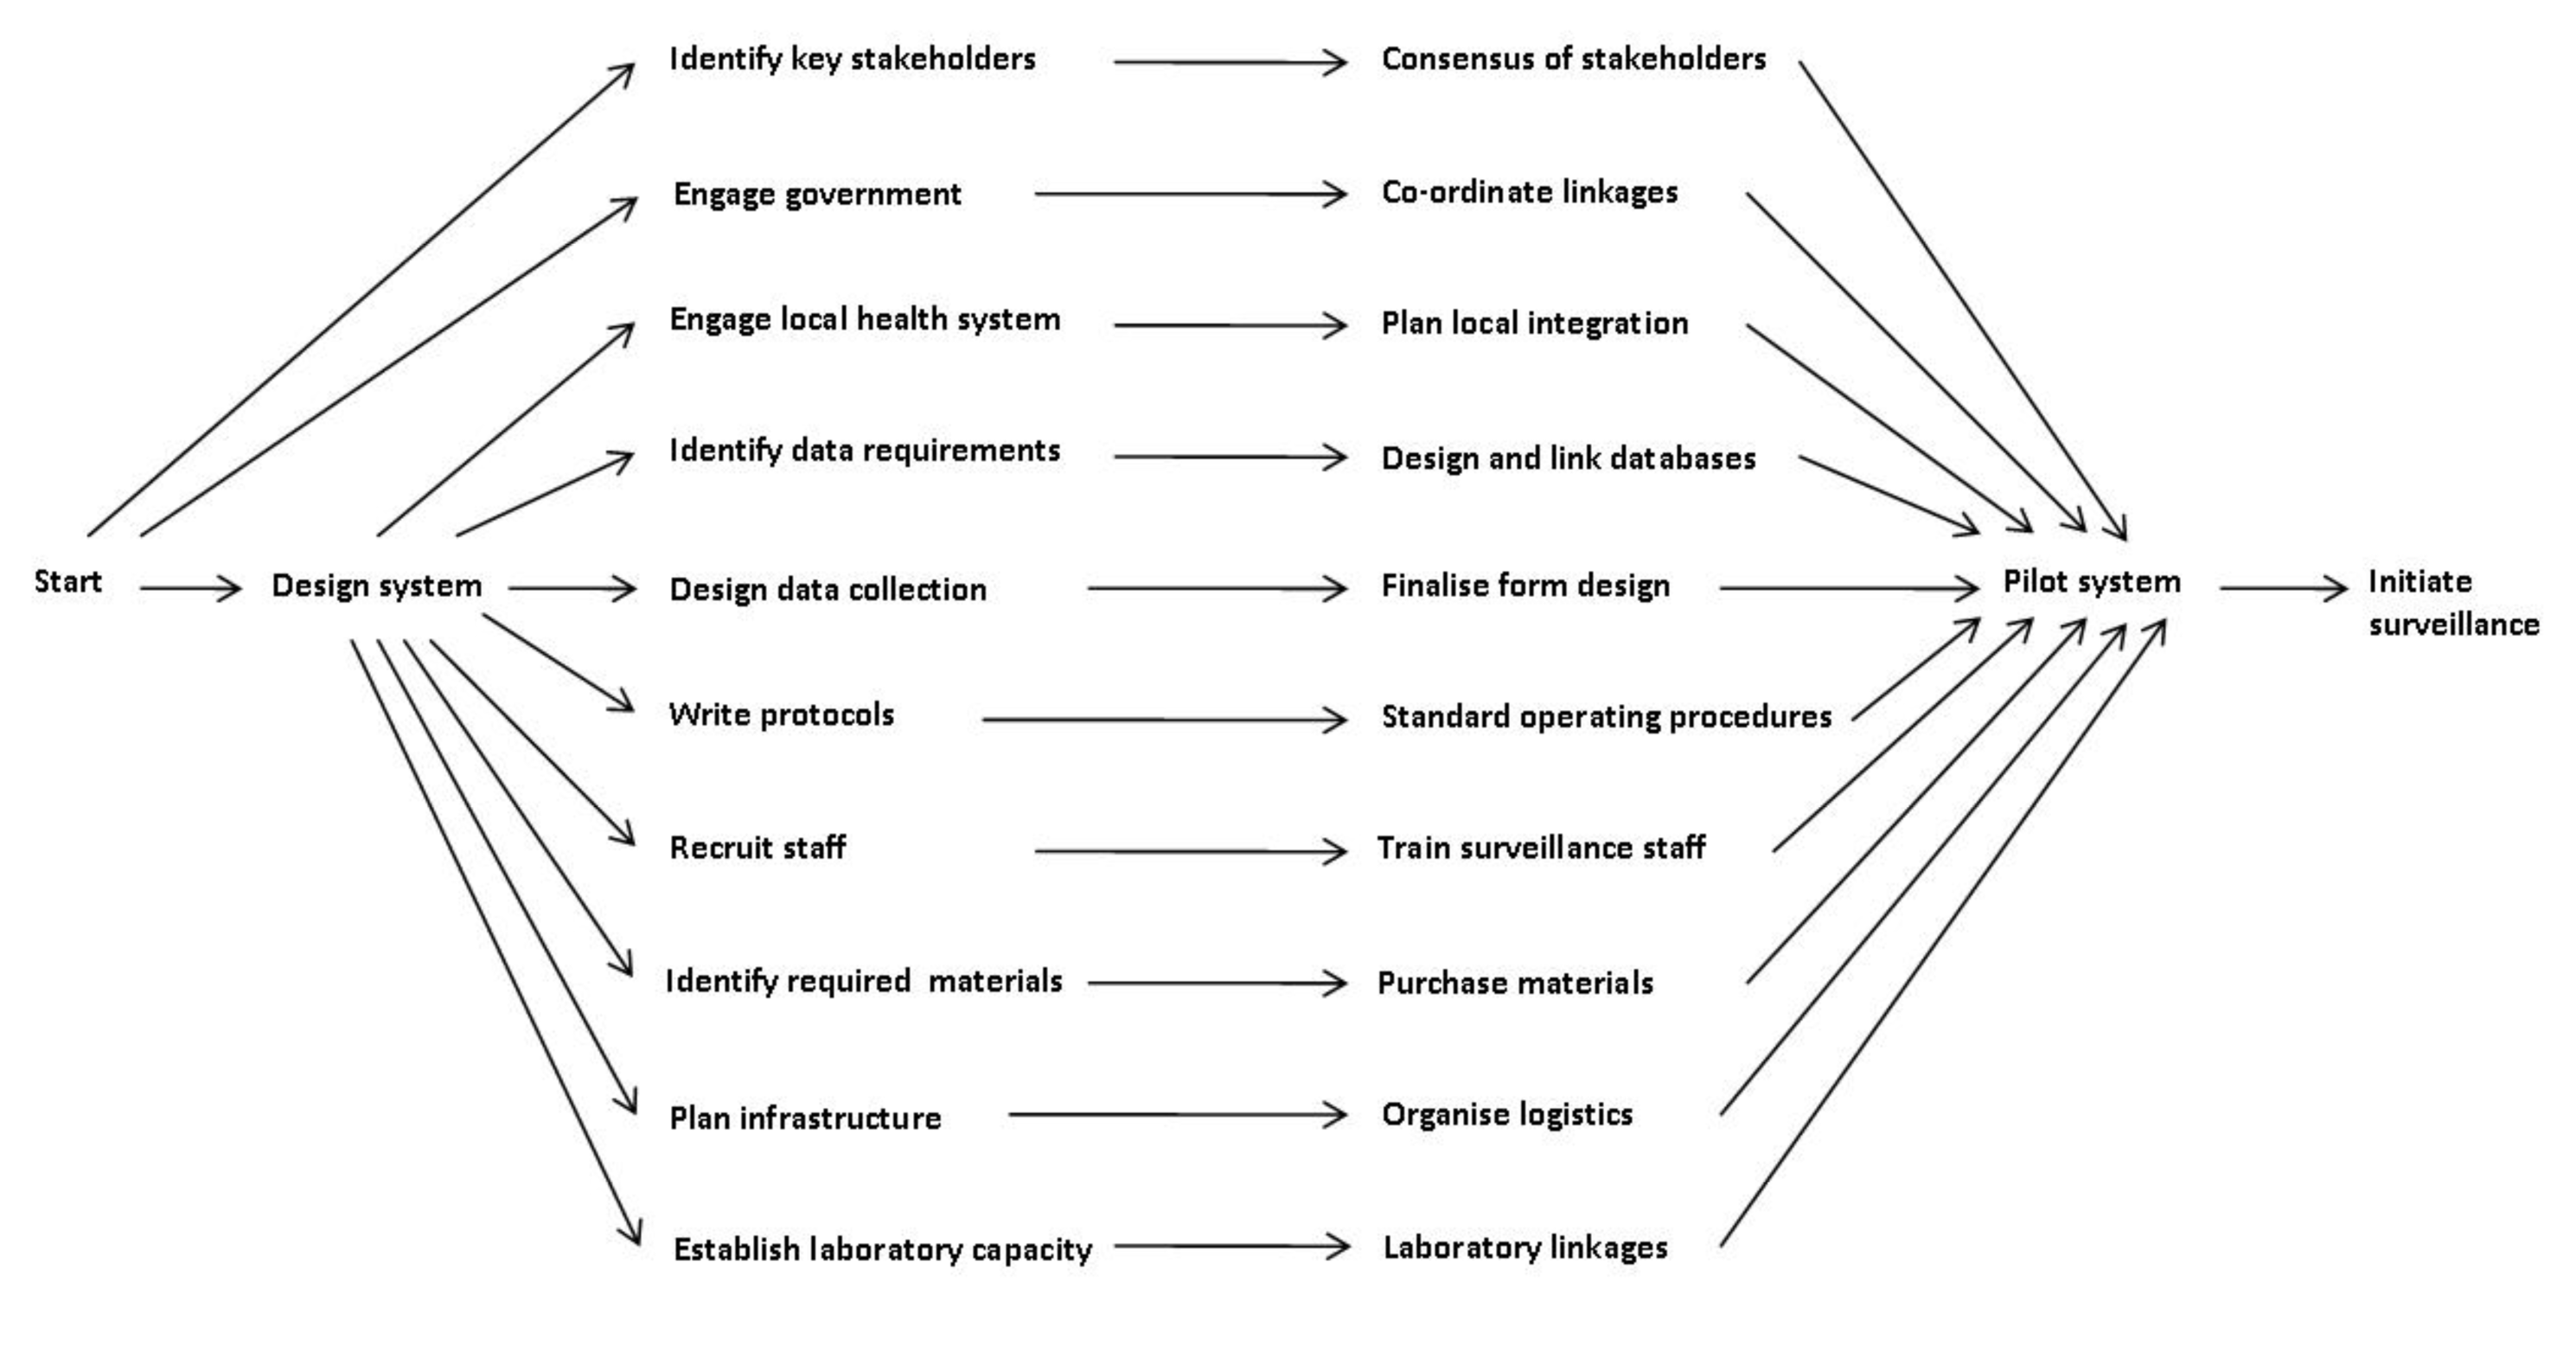 Project management for the establishment of the Gambian pneumococcal surveillance system: major dependency relationships.